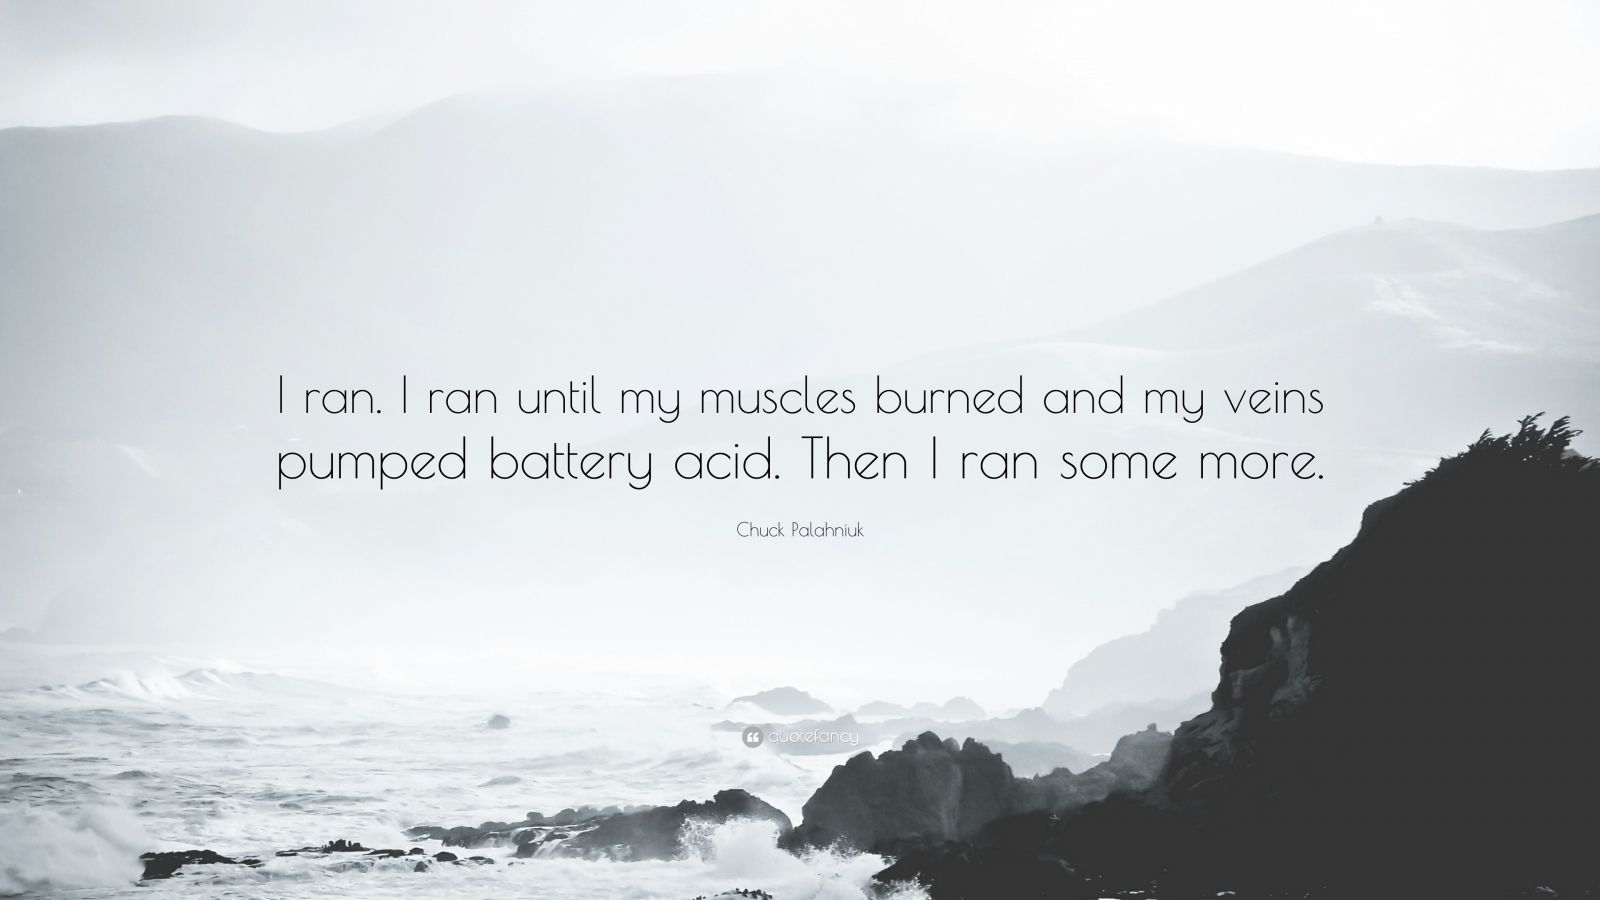 """Chuck Palahniuk Quote: """"I ran. I ran until my muscles burned and my veins pumped battery acid. Then I ran some more."""""""